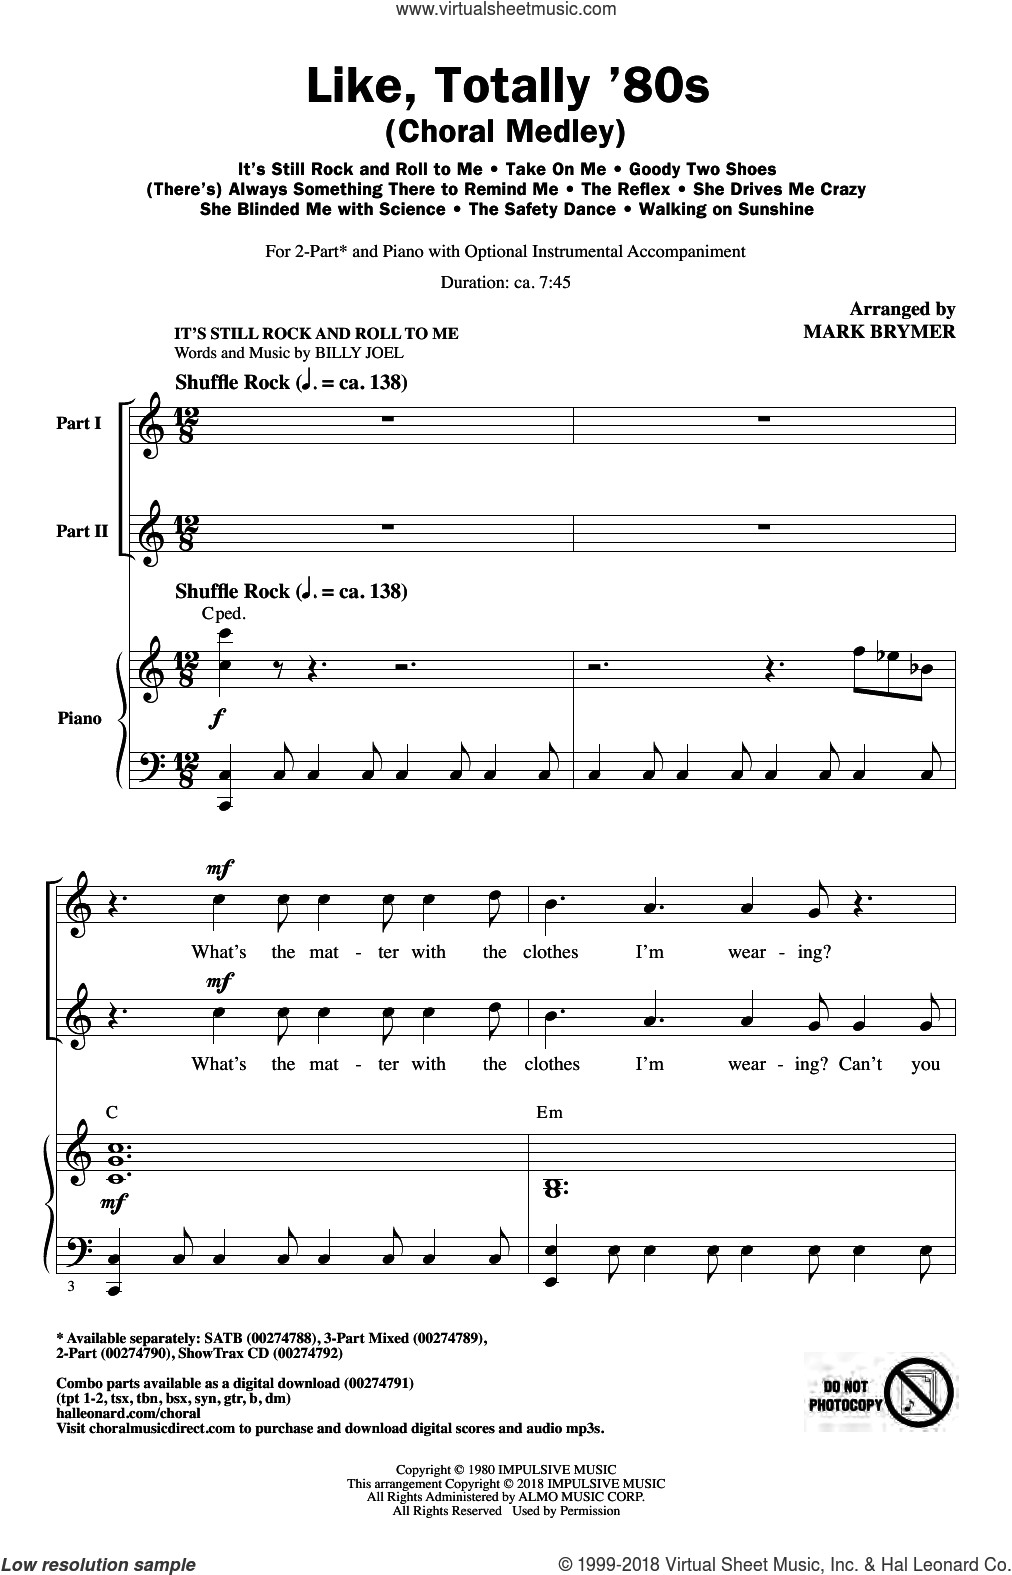 Like, Totally '80s (arr. Mark Brymer) sheet music for choir (2-Part)  and Mark Brymer, intermediate duet